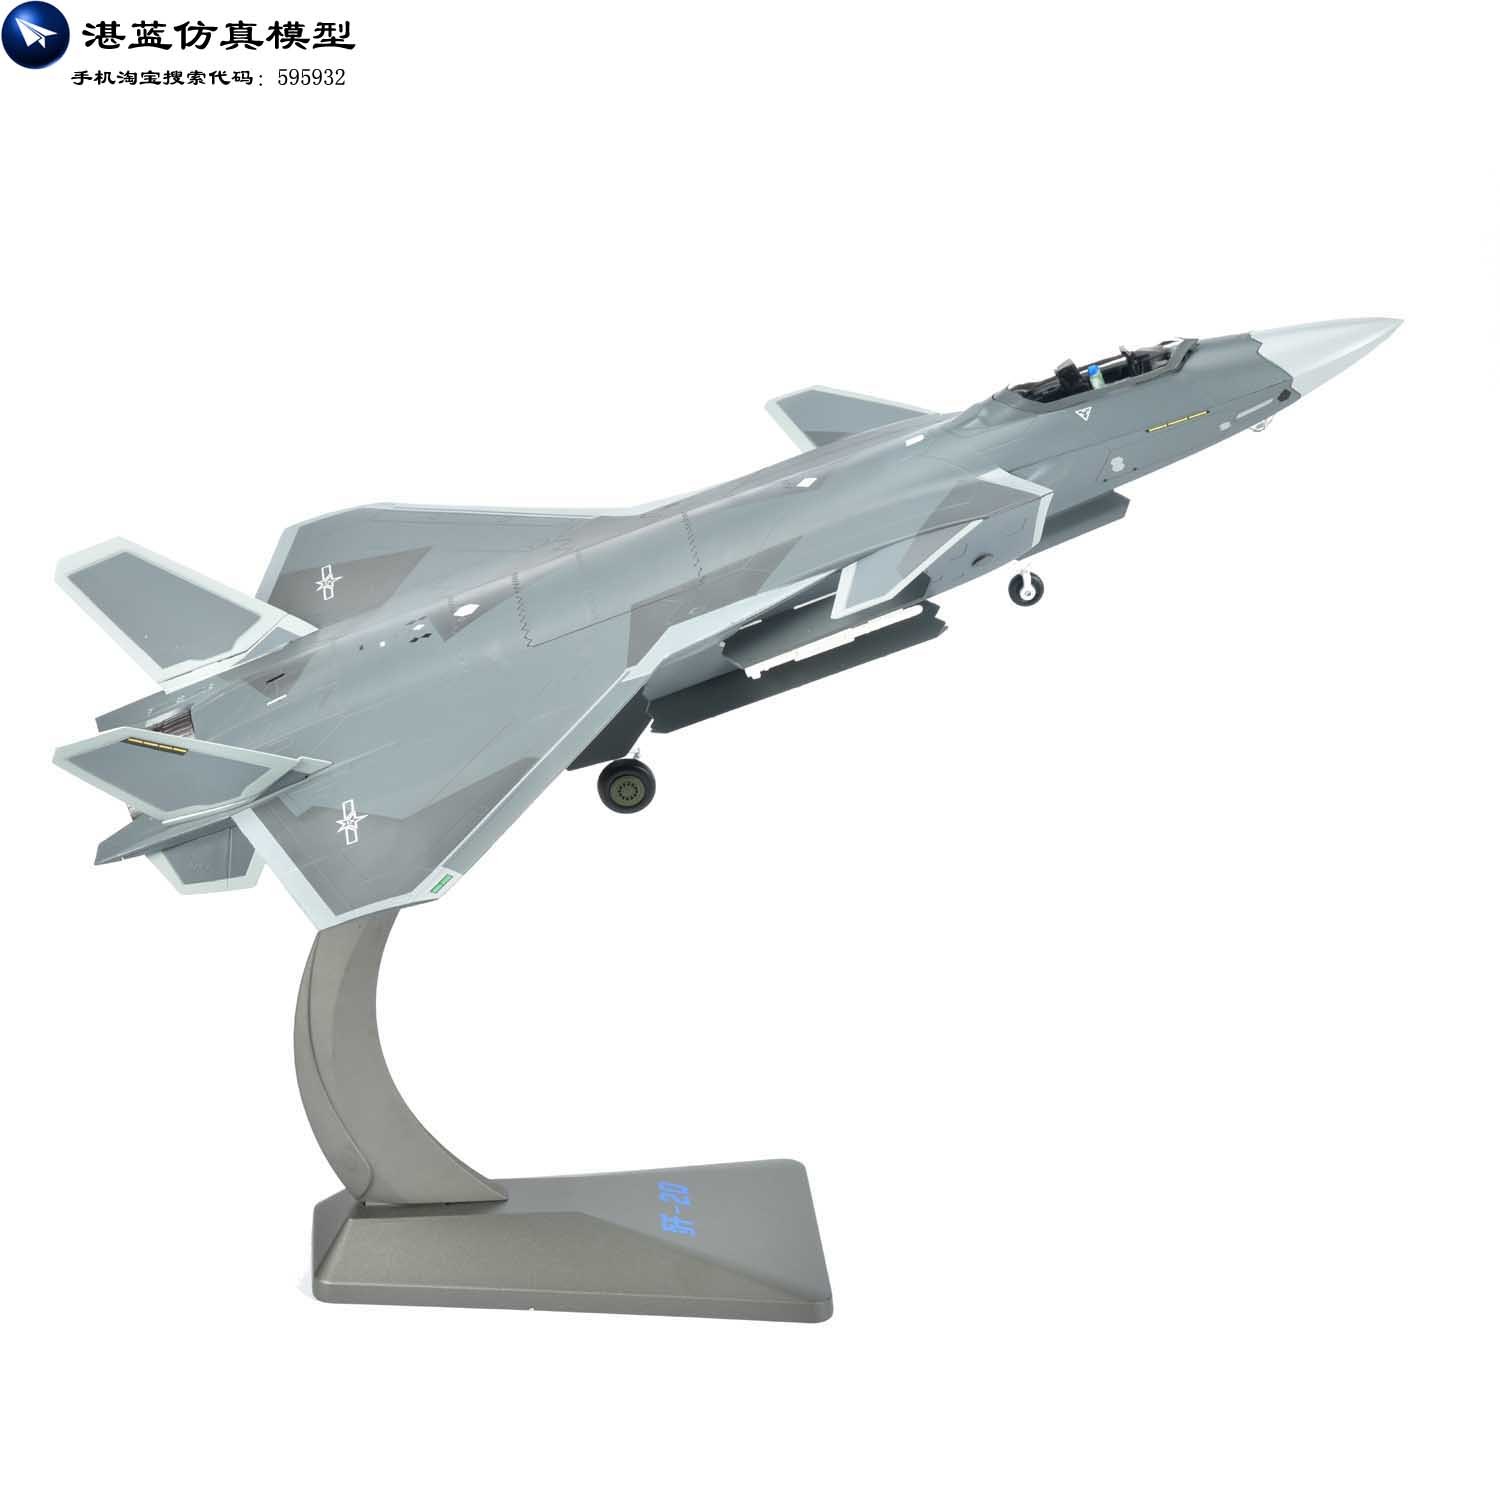 Brand New YJ 1/48 Scale Military Model Toys Chengdu J-20 Fire Fang Fighter Diecast Metal Plane Model Toy For Gift/Collection china airforce j 10 aircraft model j10 fighter model military model finished 1 48 alloy